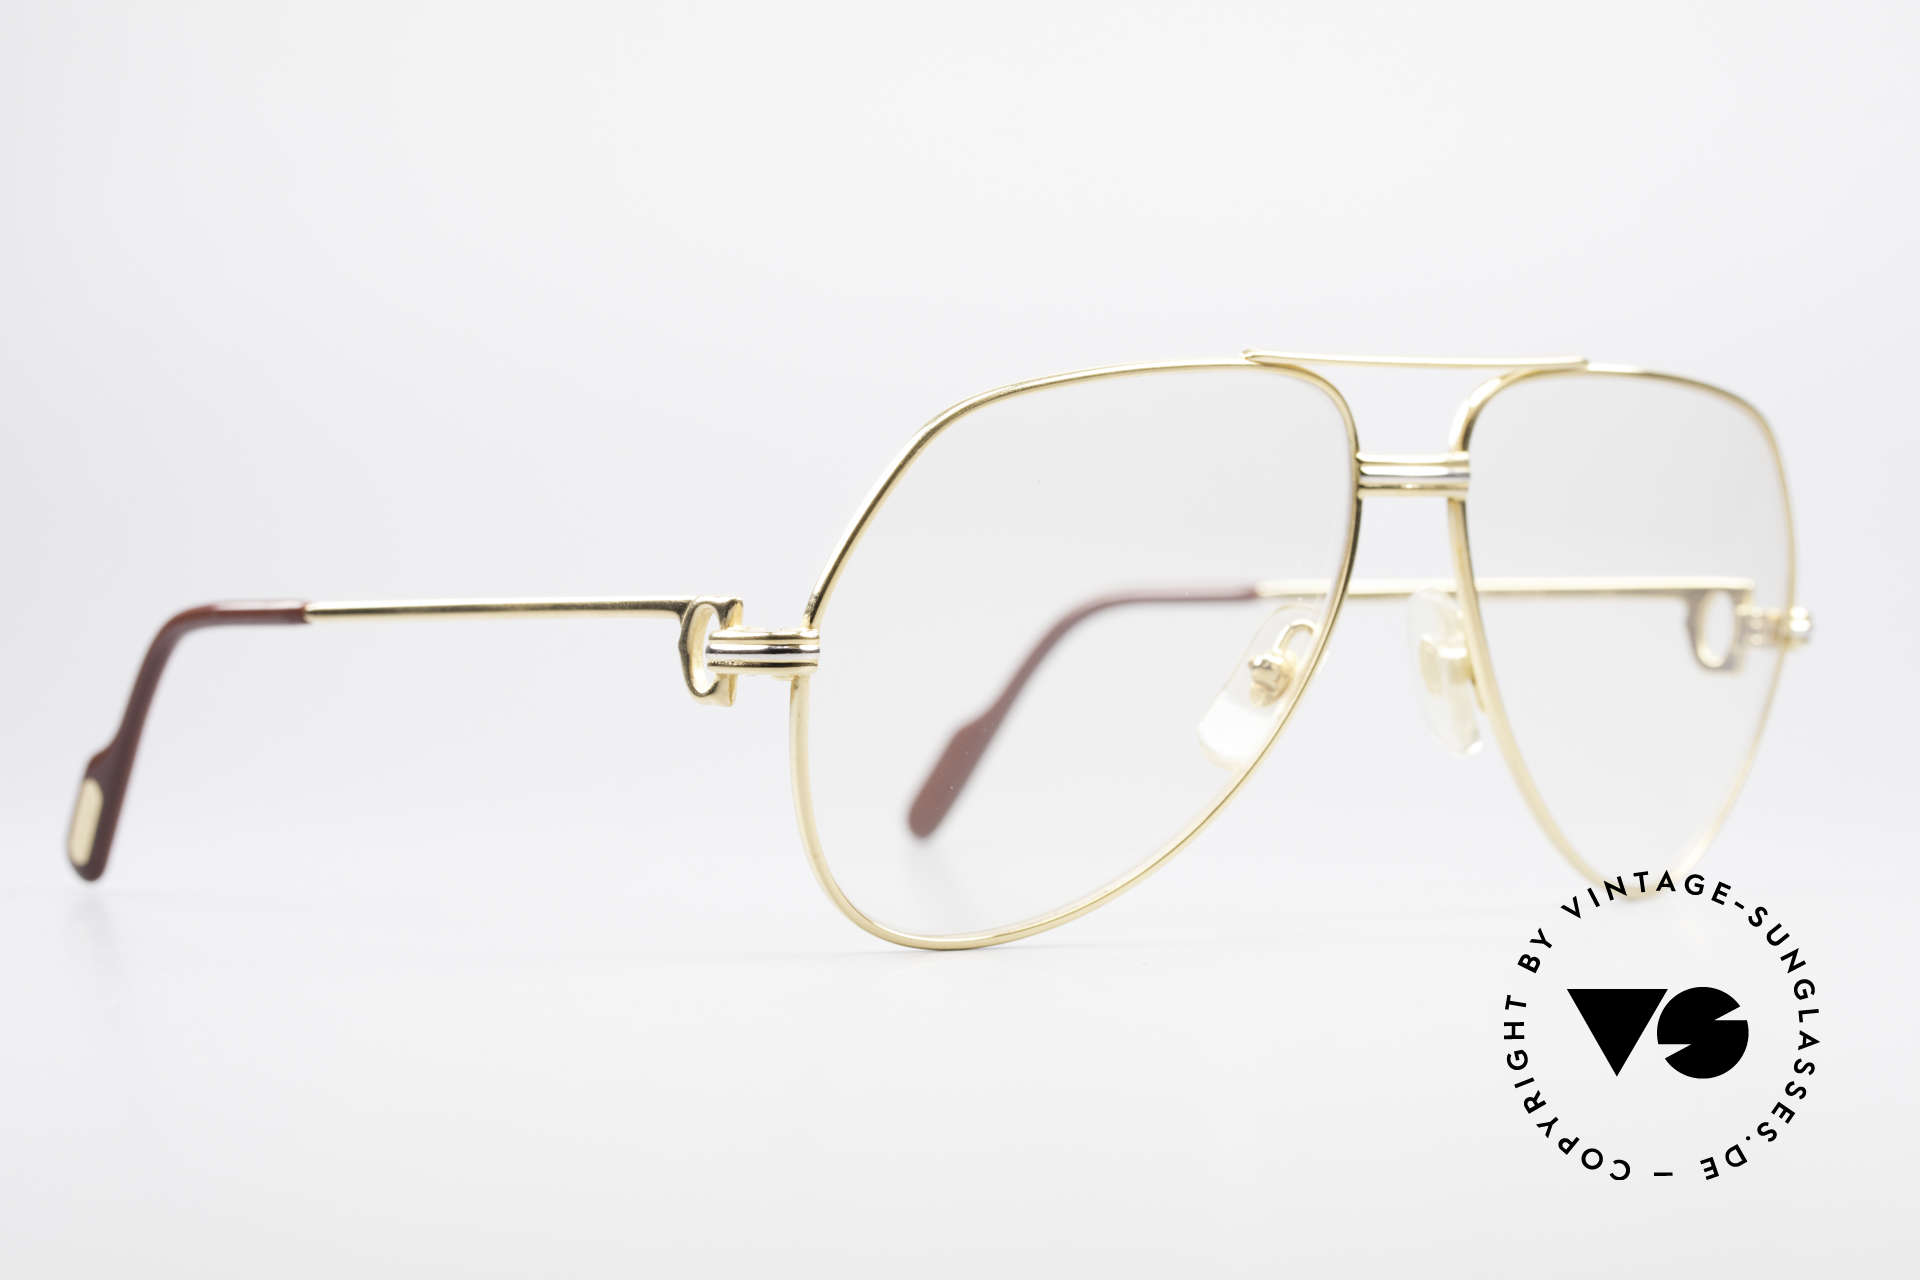 Cartier Vendome LC - M Changeable Cartier Lenses, this pair (with L.Cartier decor): Medium size 59-14, 130, Made for Men and Women